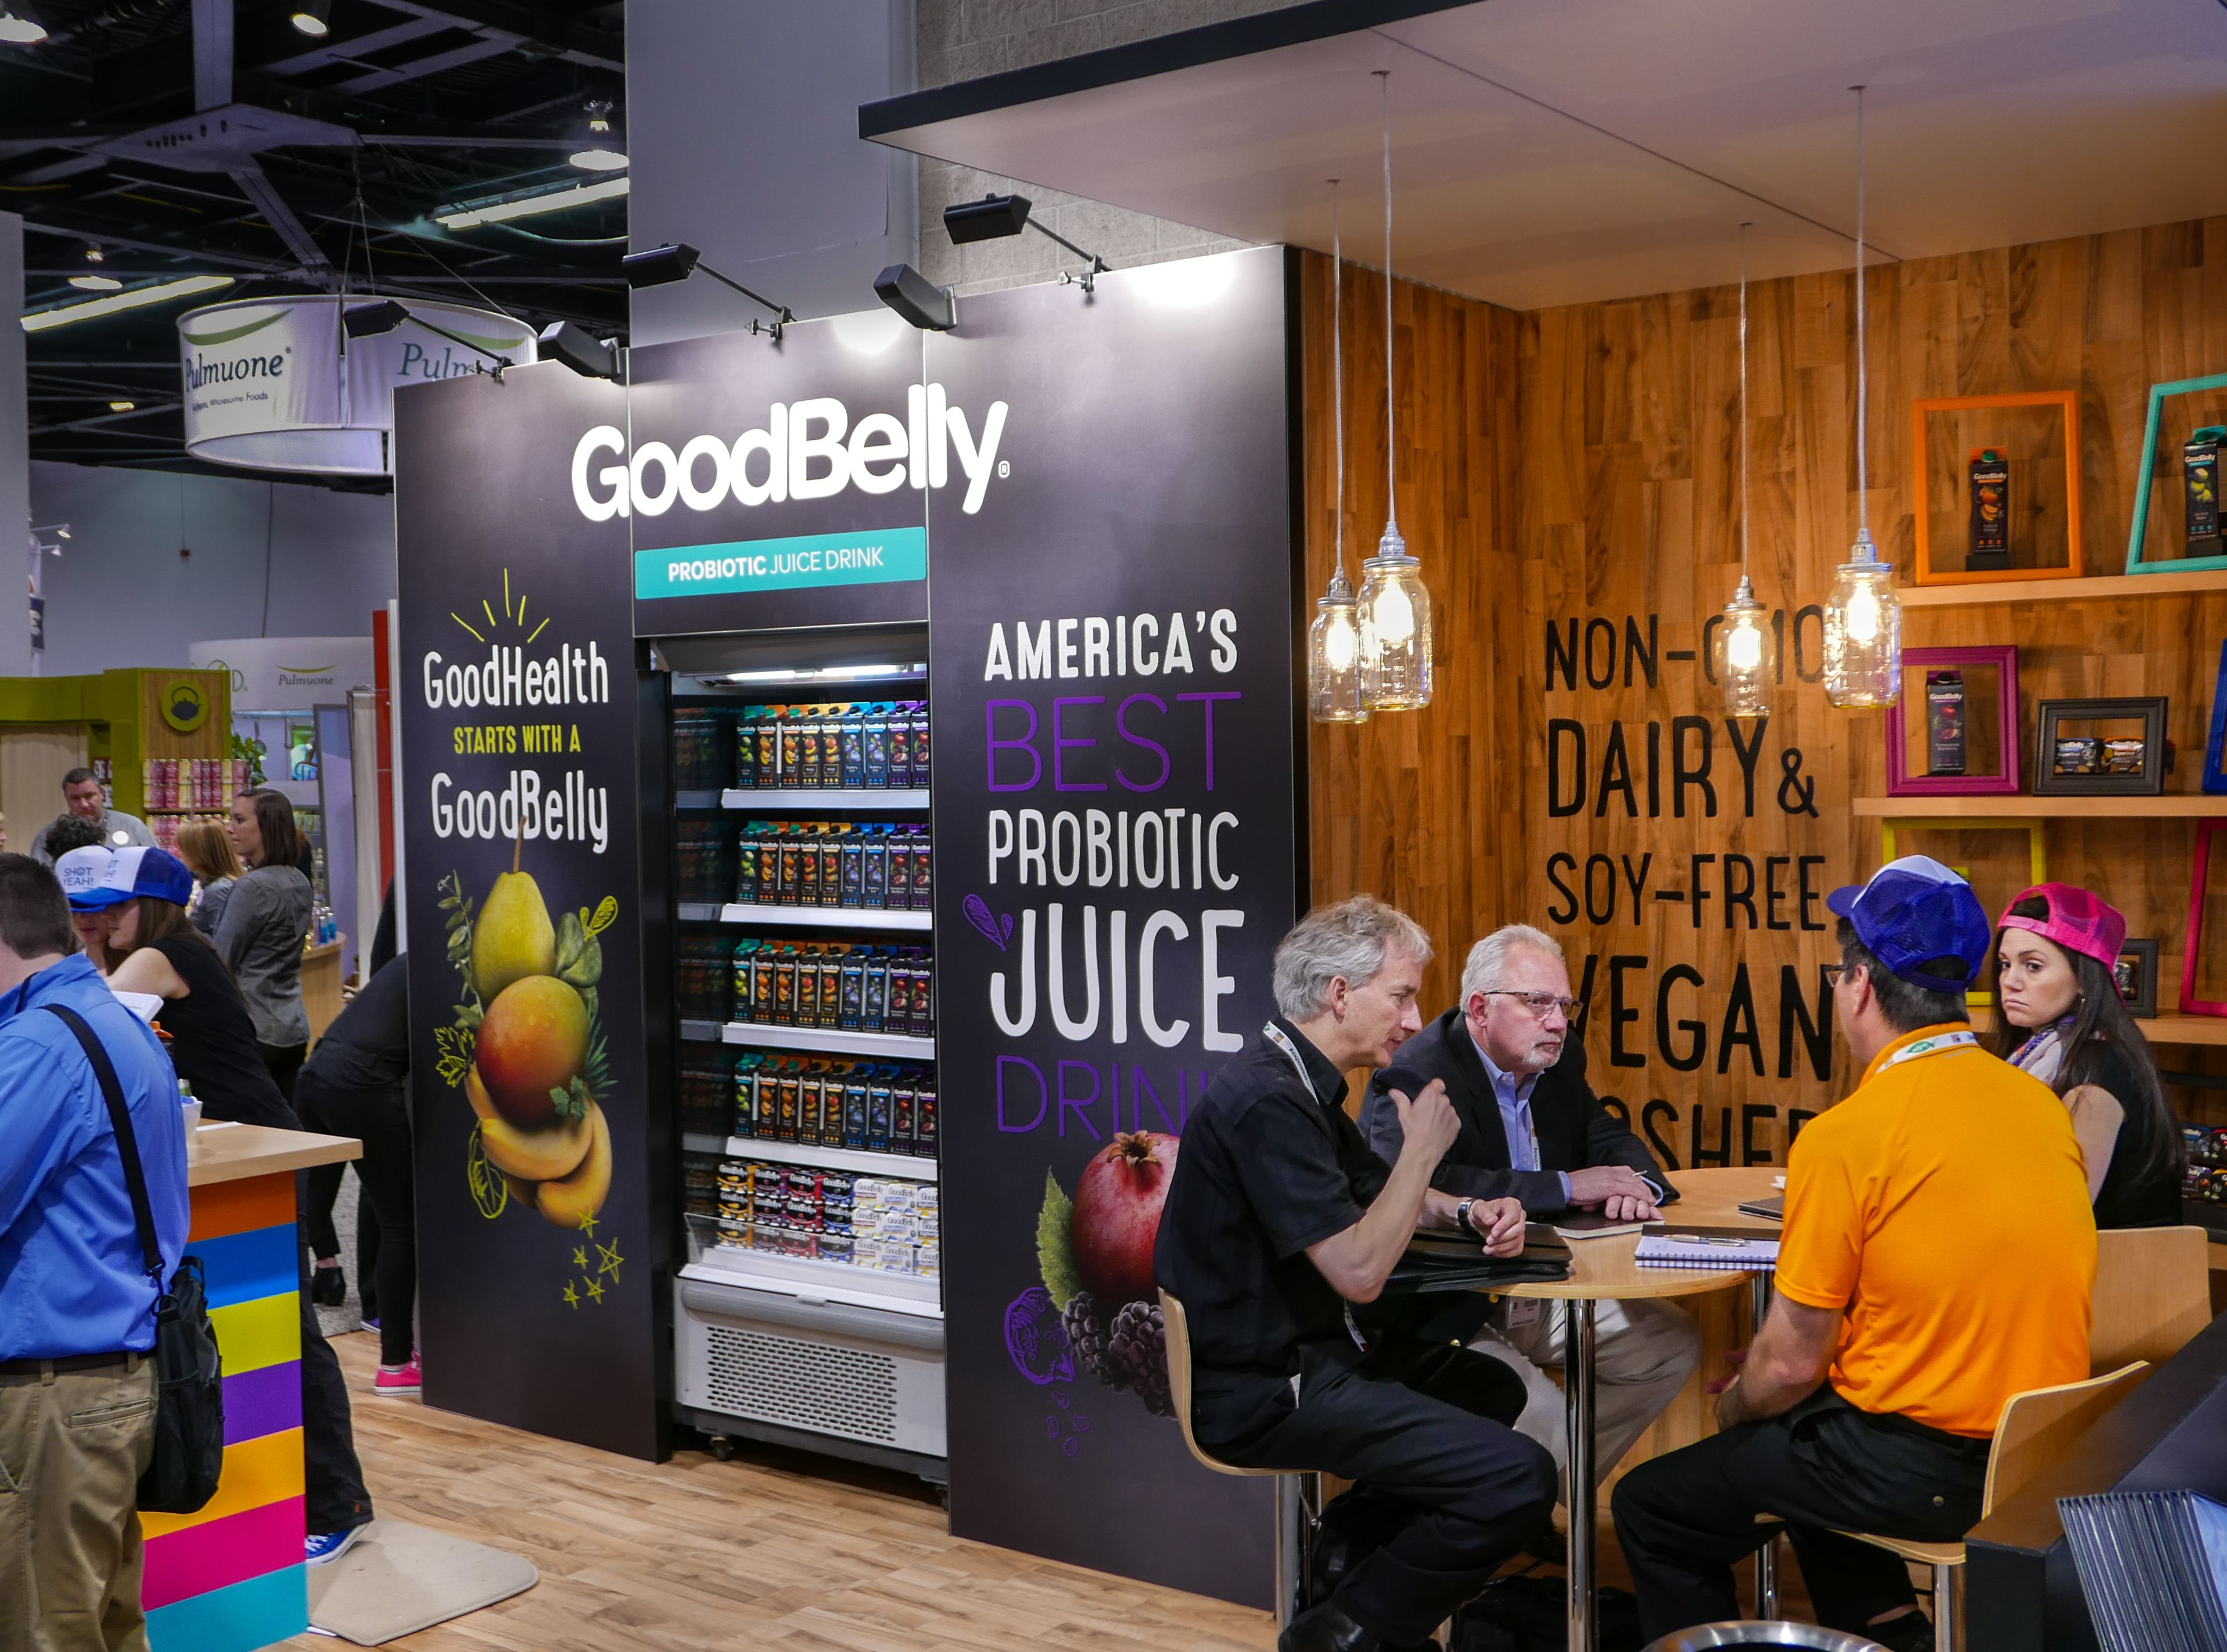 We Created This Vibrant And Energetic Trade Show Booth Design For Good Belly In Order To